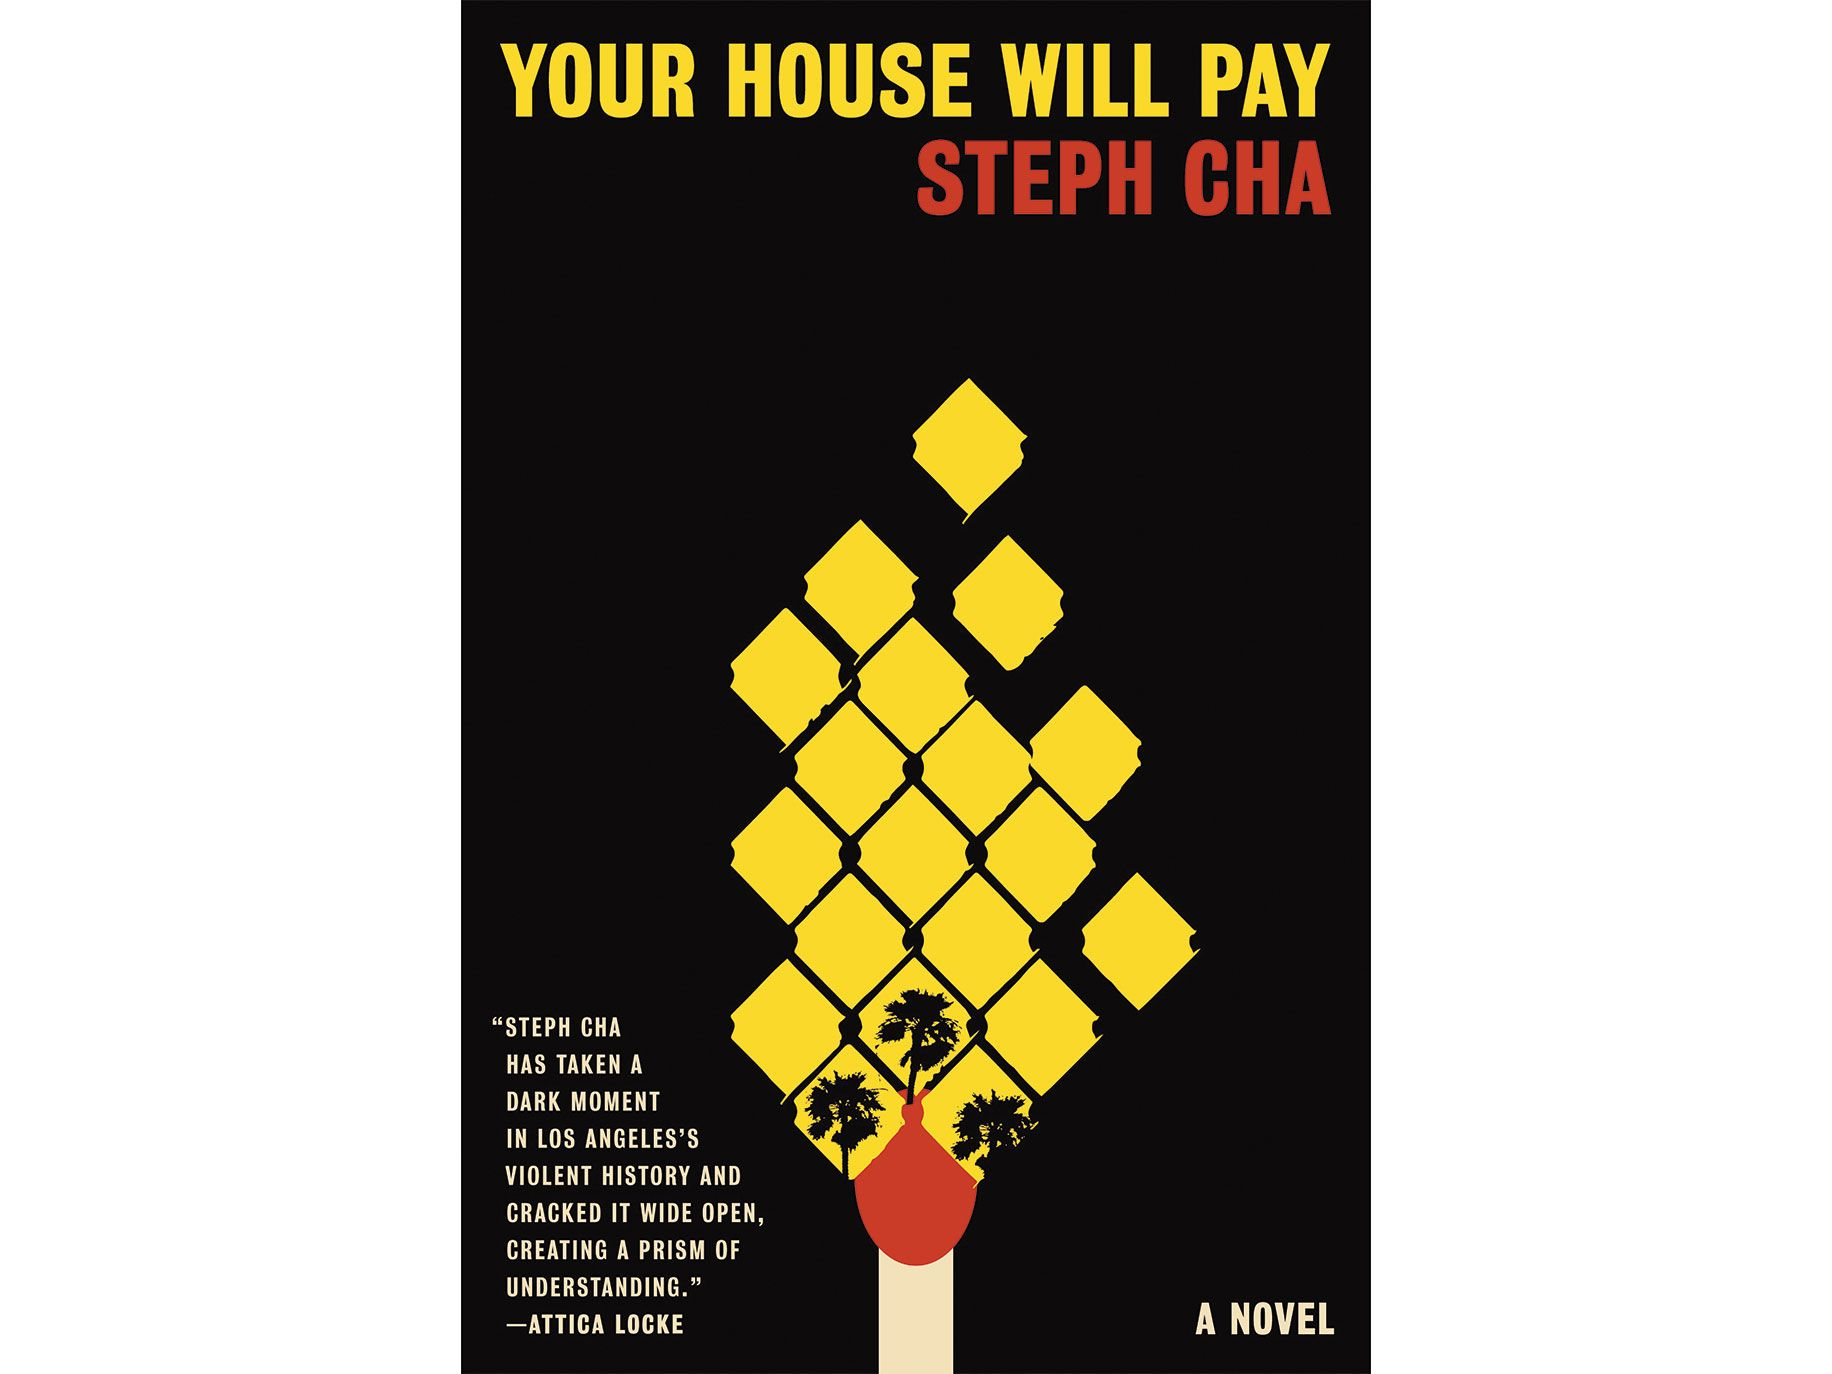 Your House Will Pay by Steph Cha, Ecco, 320 pages, $26.99